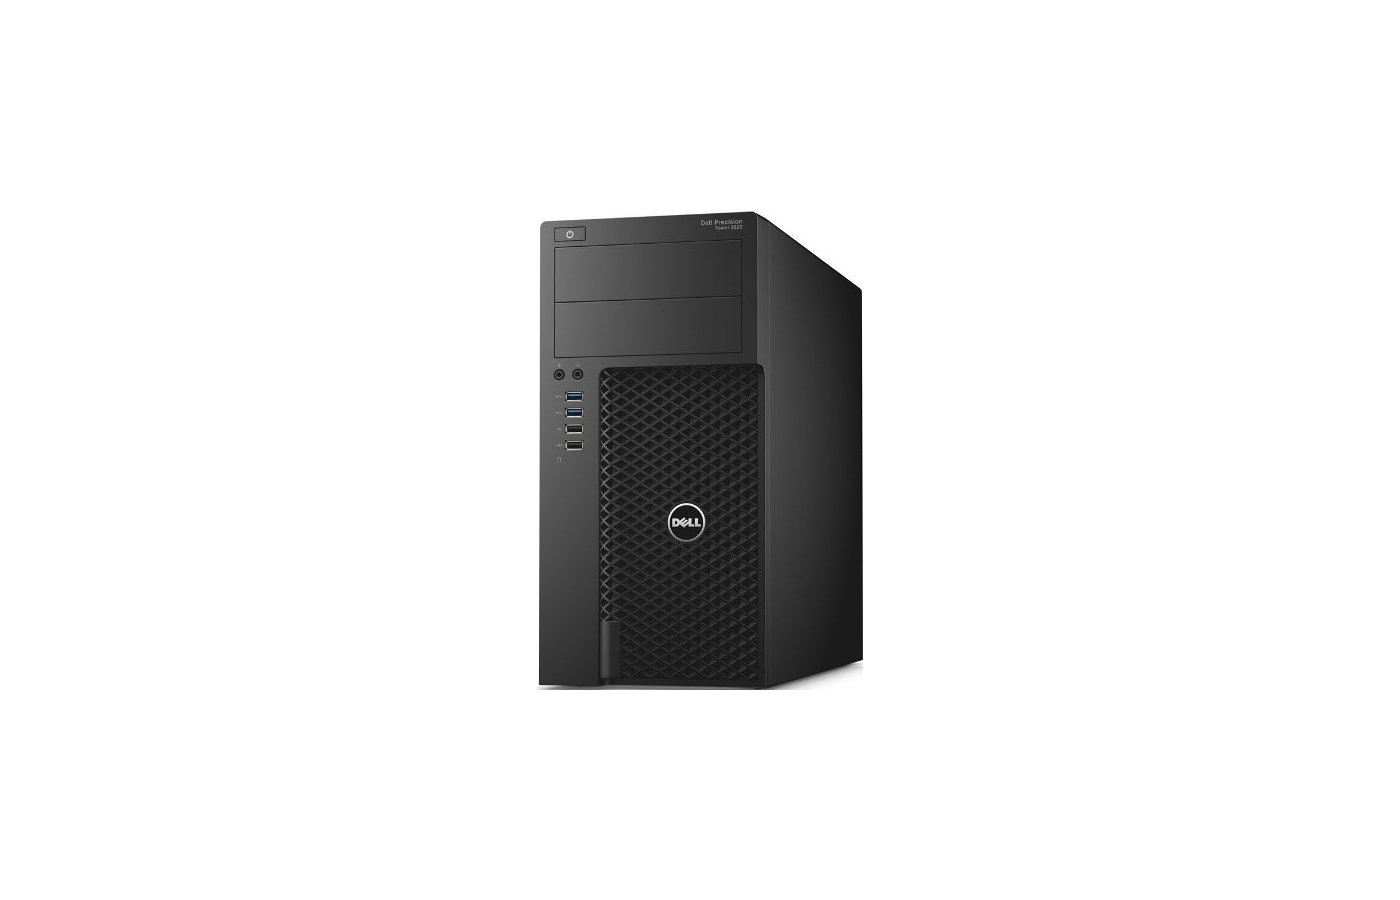 Системный блок Dell Precision 3620 MT /3620-9464/